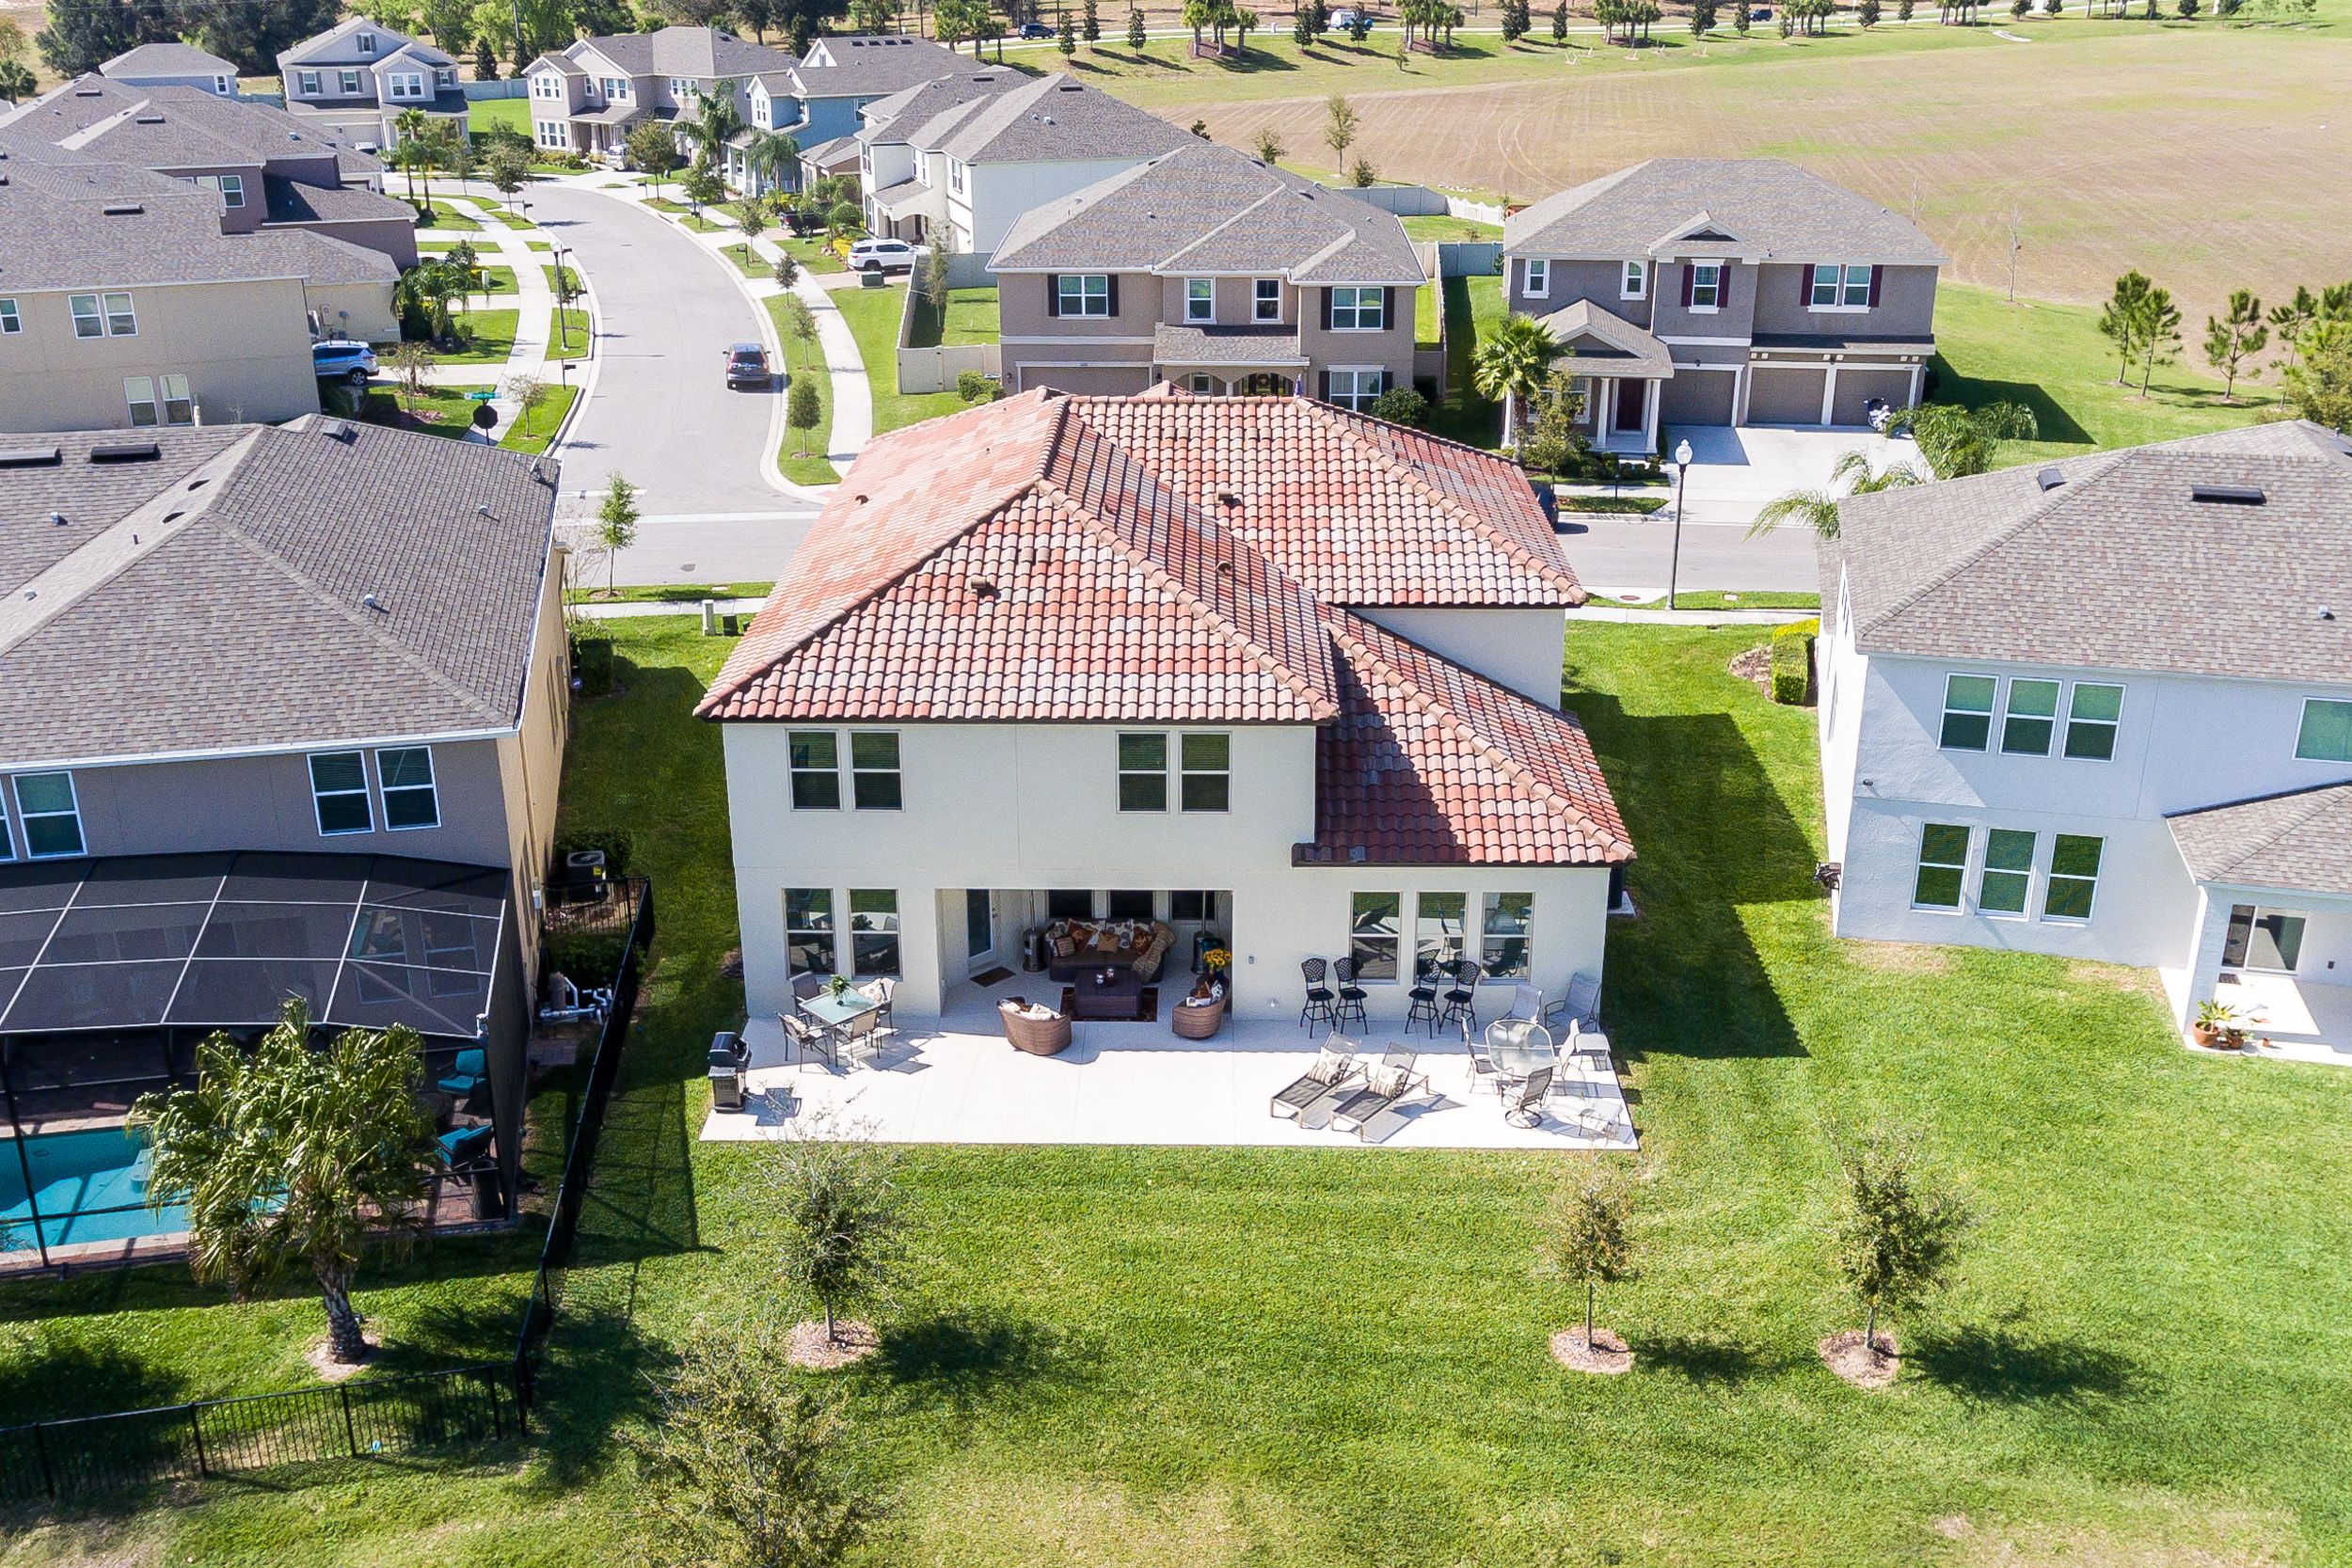 orchard hills is a master planned community featuring new single